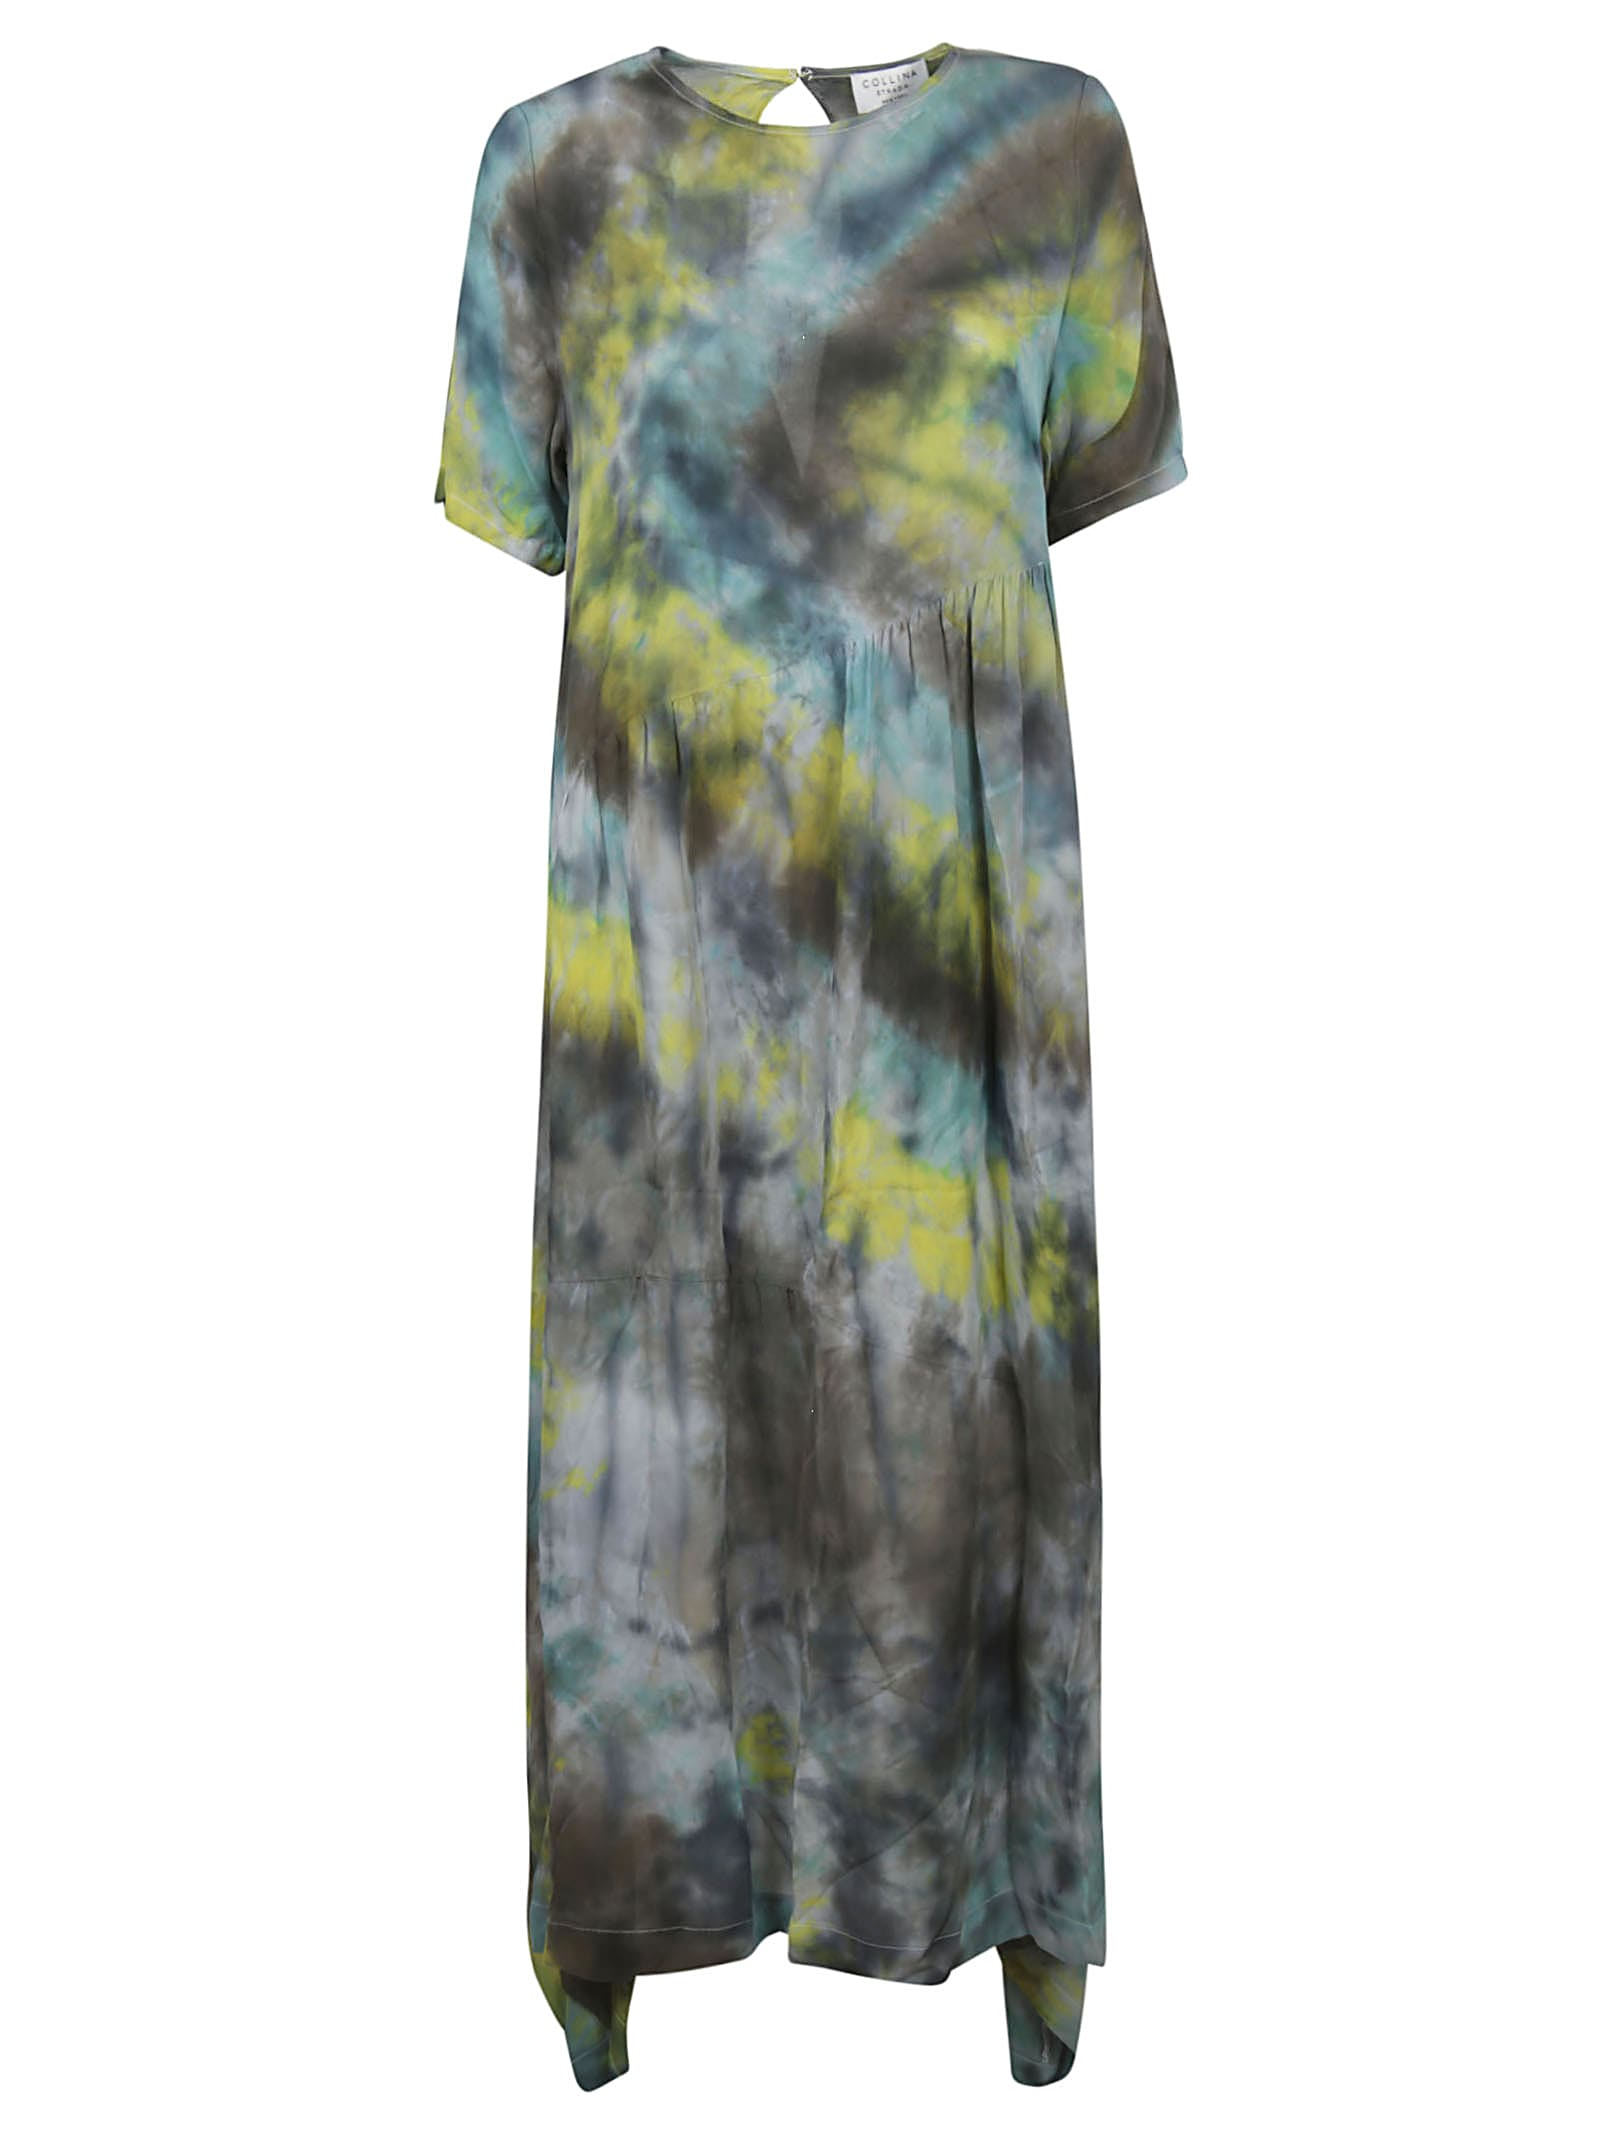 Collina Strada Tie Dye Dress